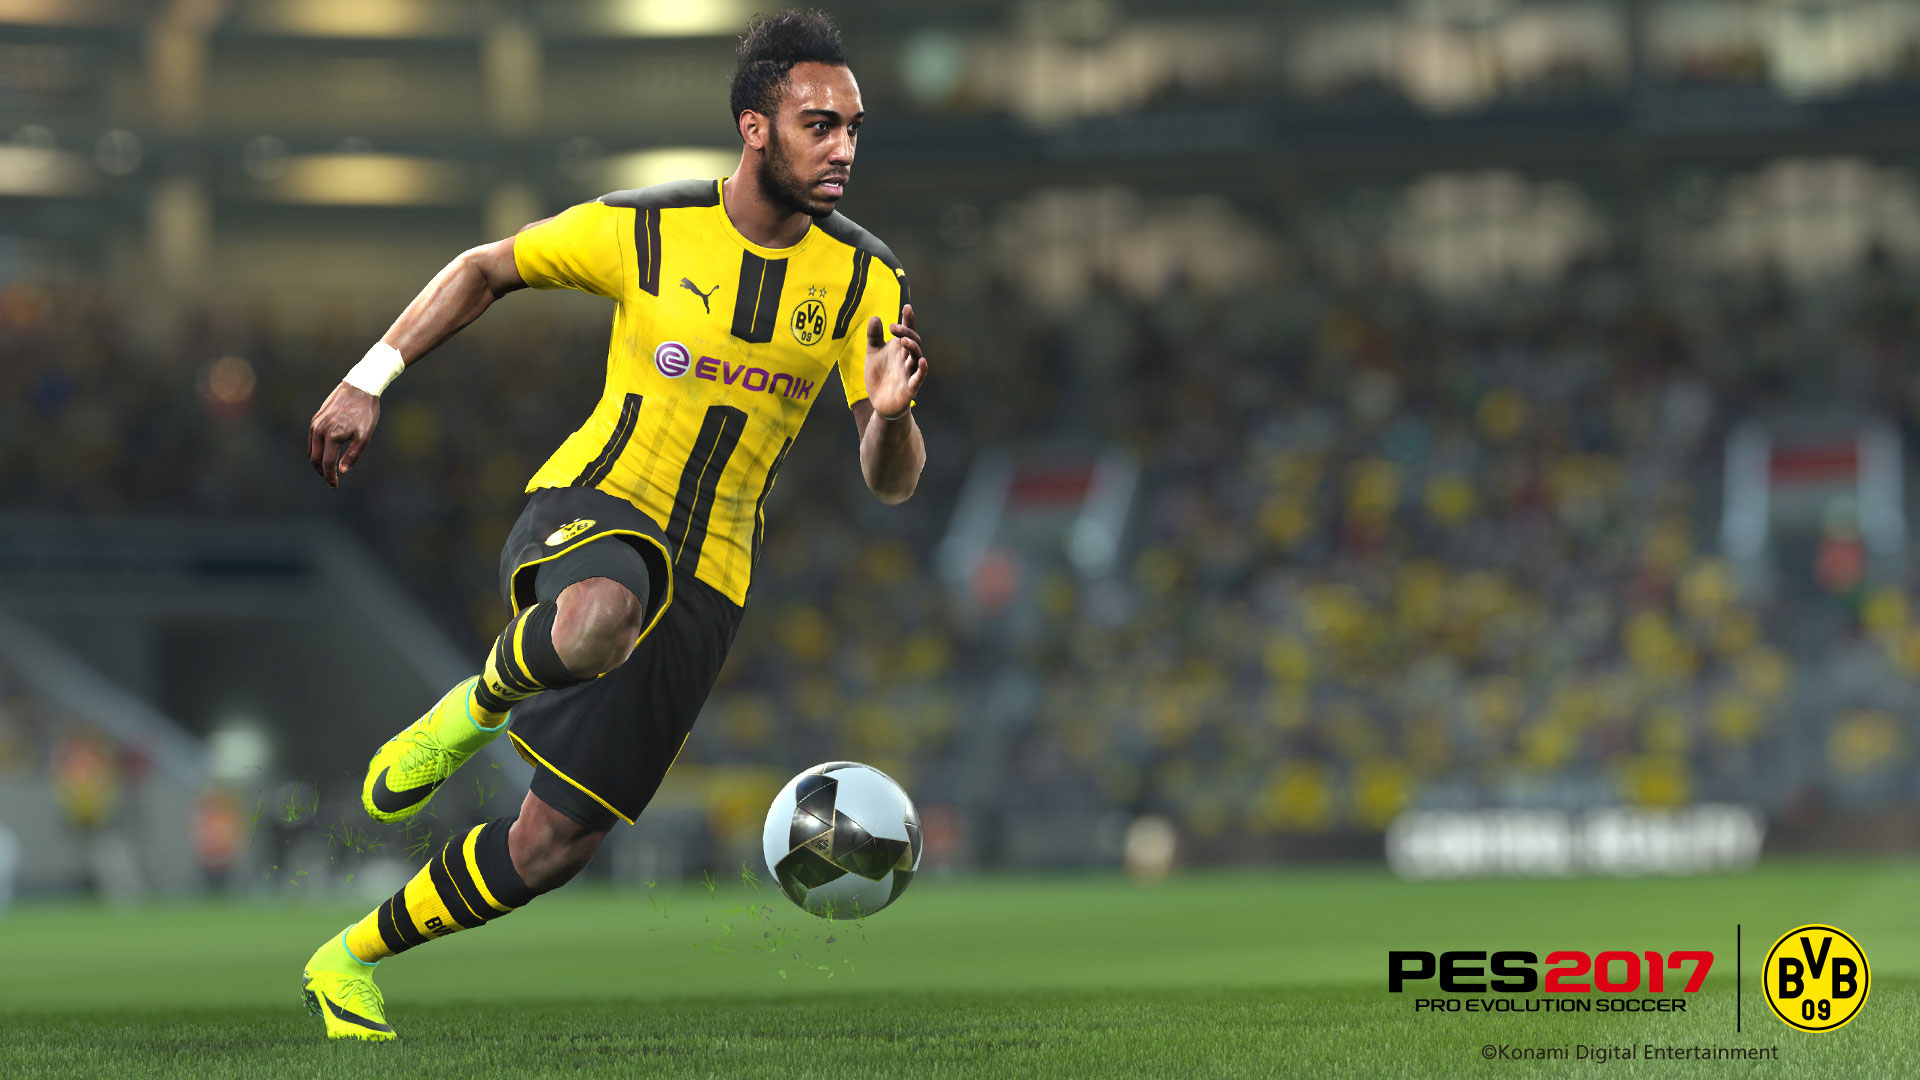 pes-2017-aubameyang-pes-kings-edition